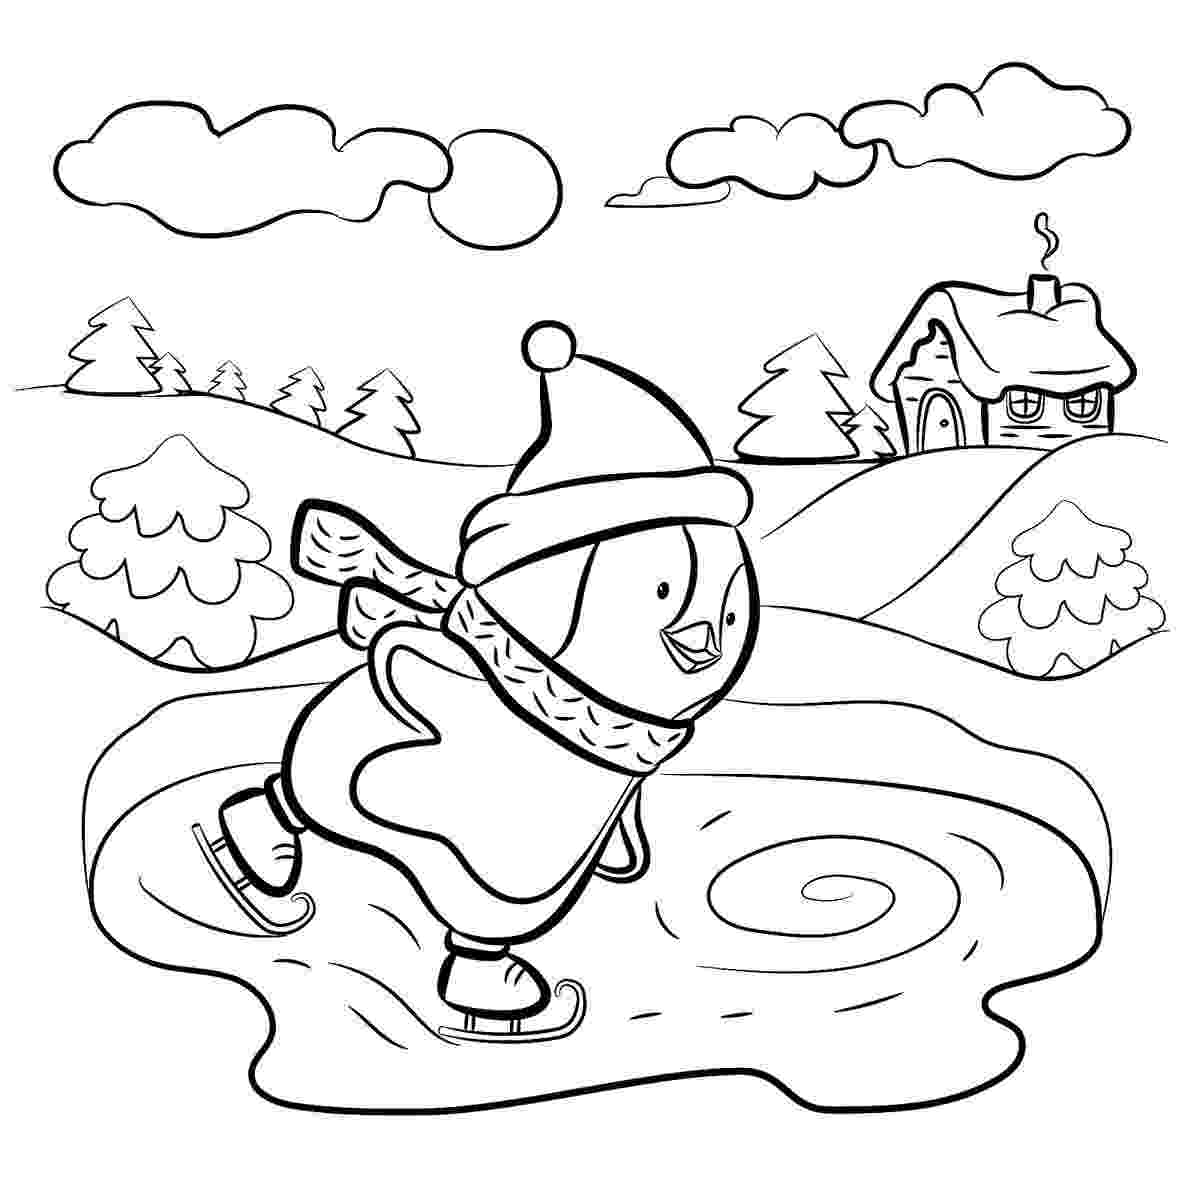 winter printable coloring pages free printable winter coloring pages printable coloring winter pages